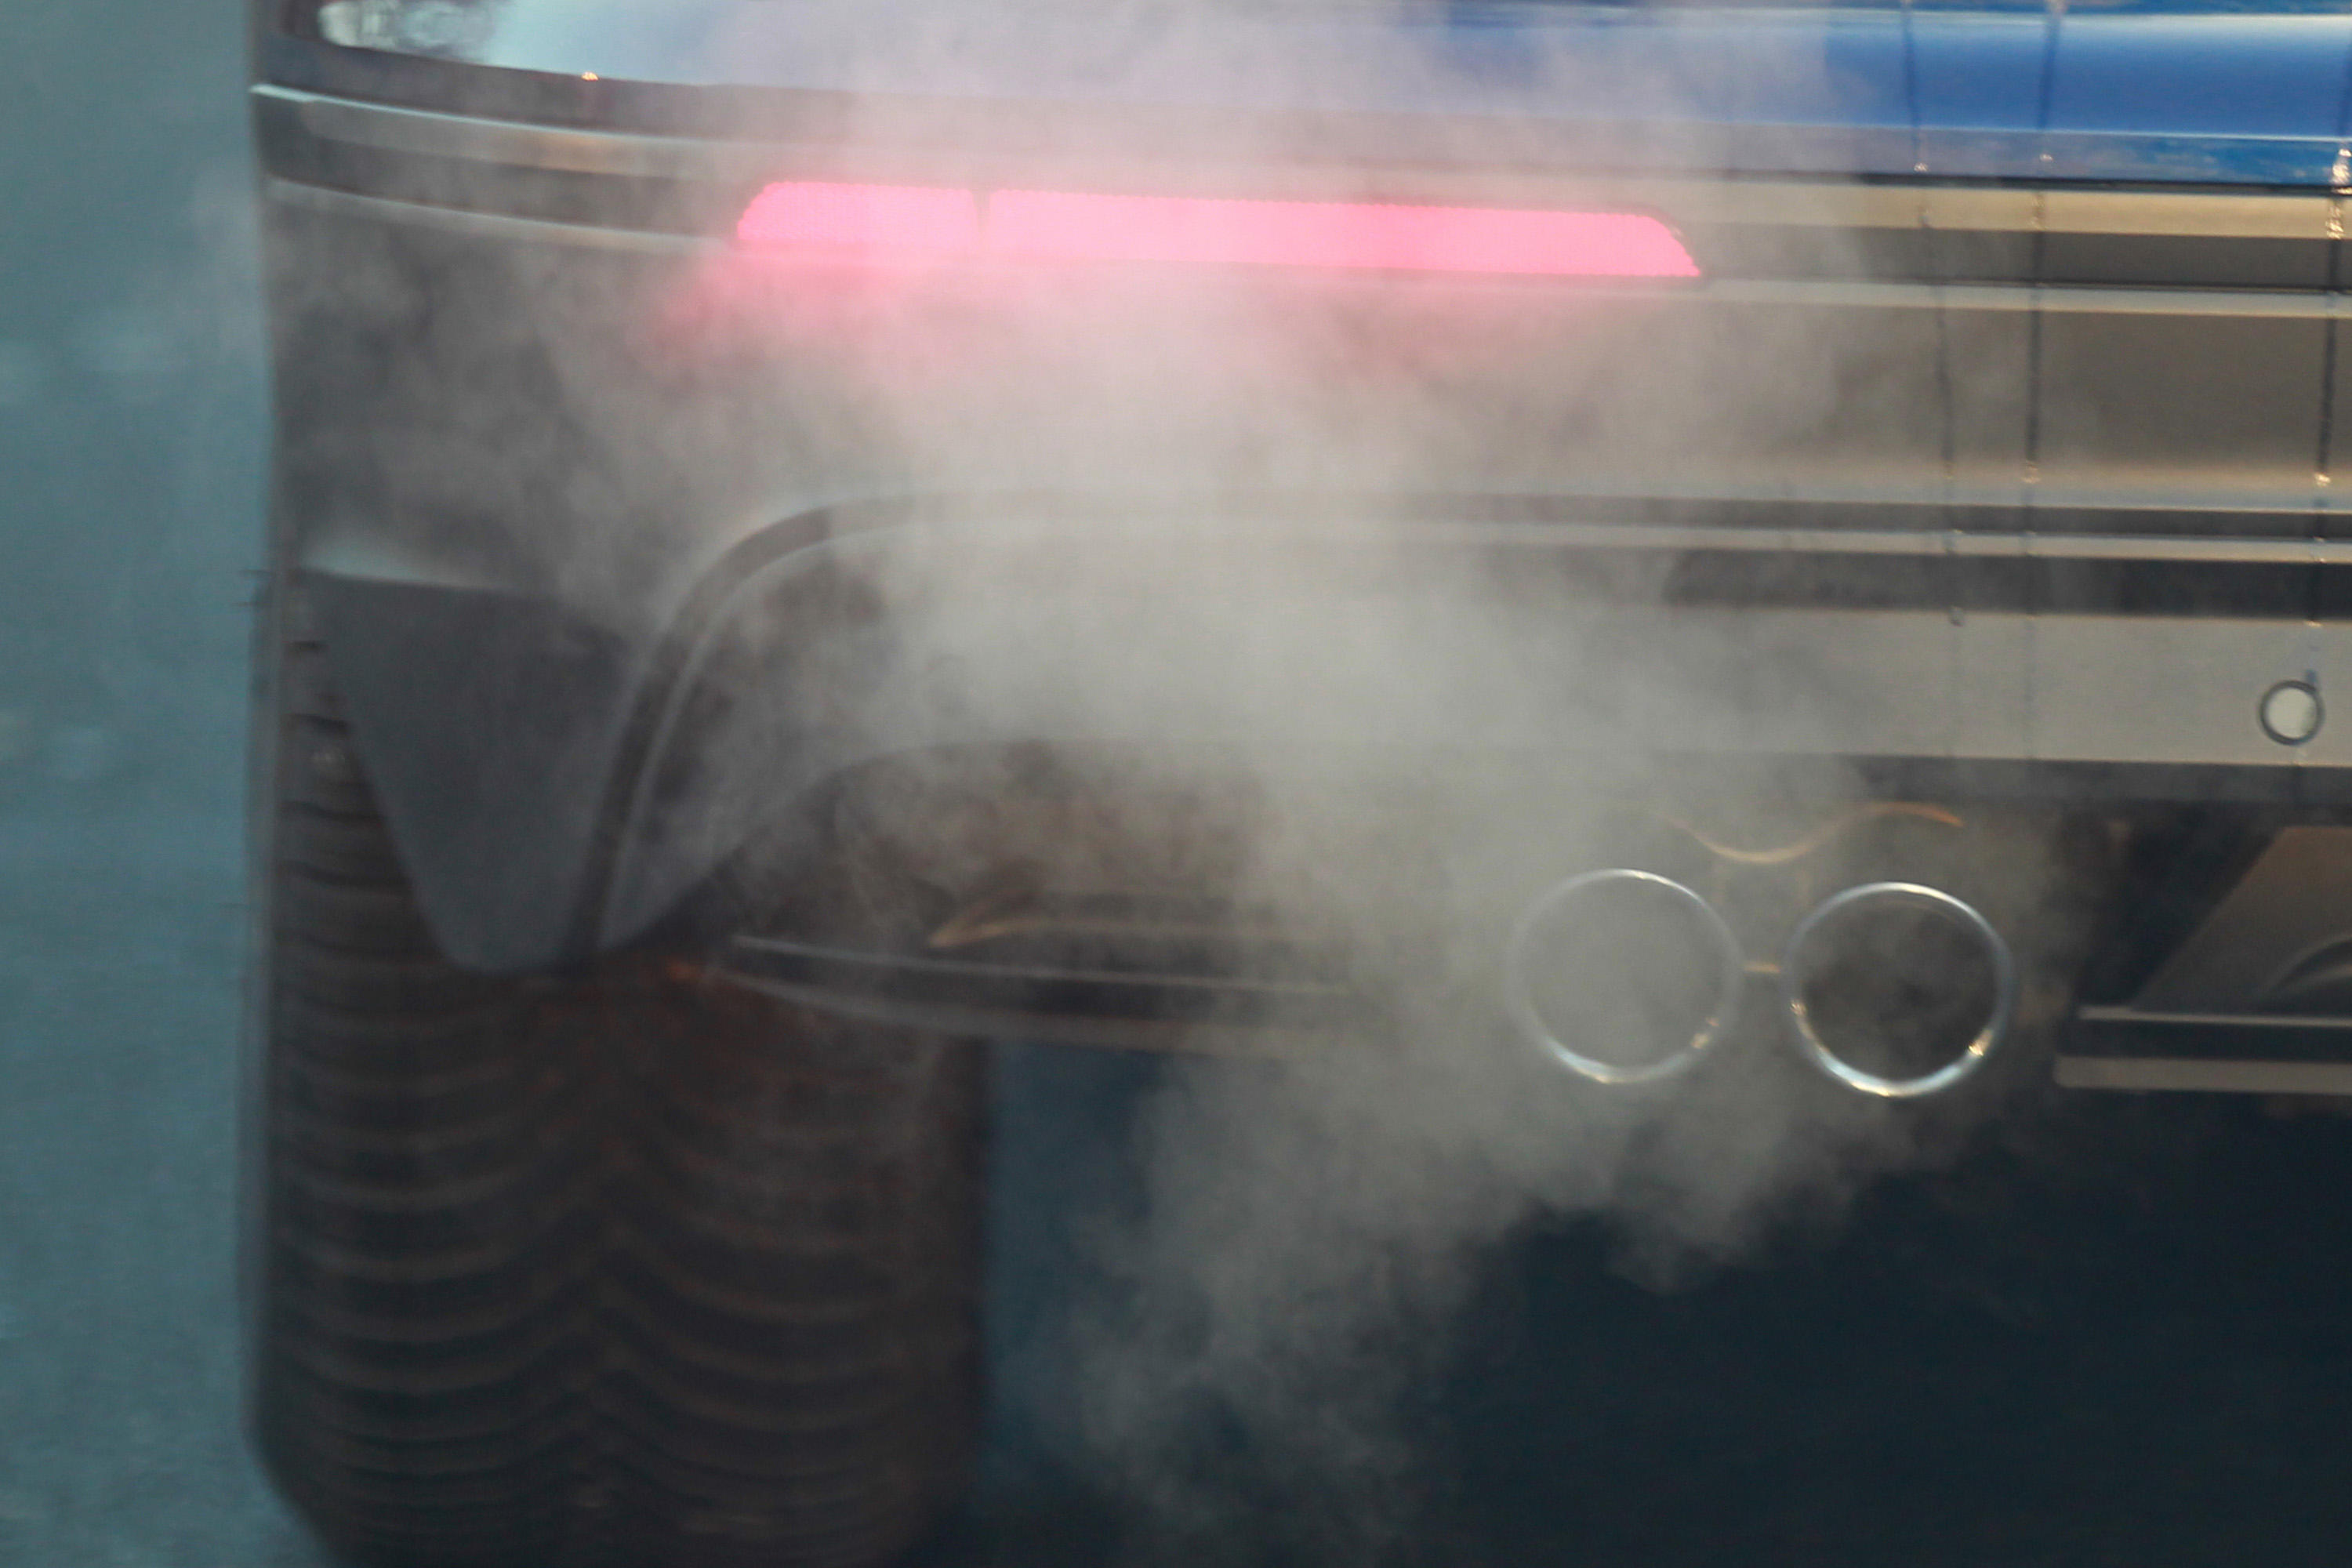 A car seen emitting exhaust fumes on the Street In Cologne.